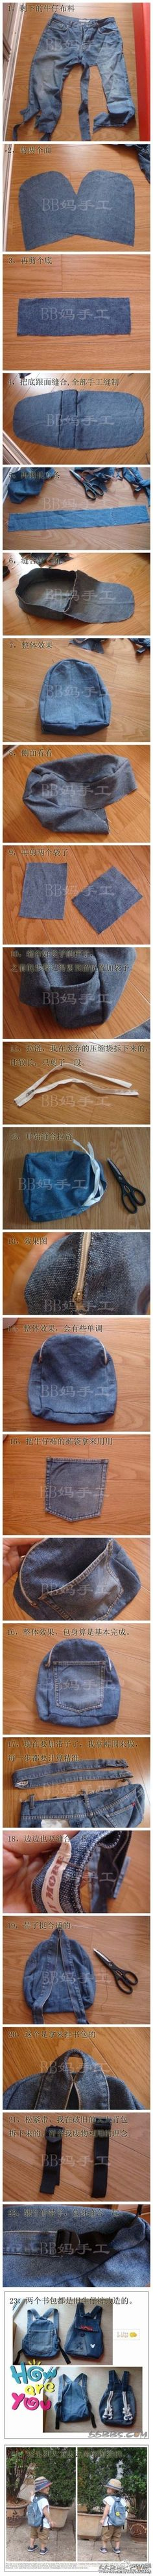 Jean Backpack, repurpose your jeans!